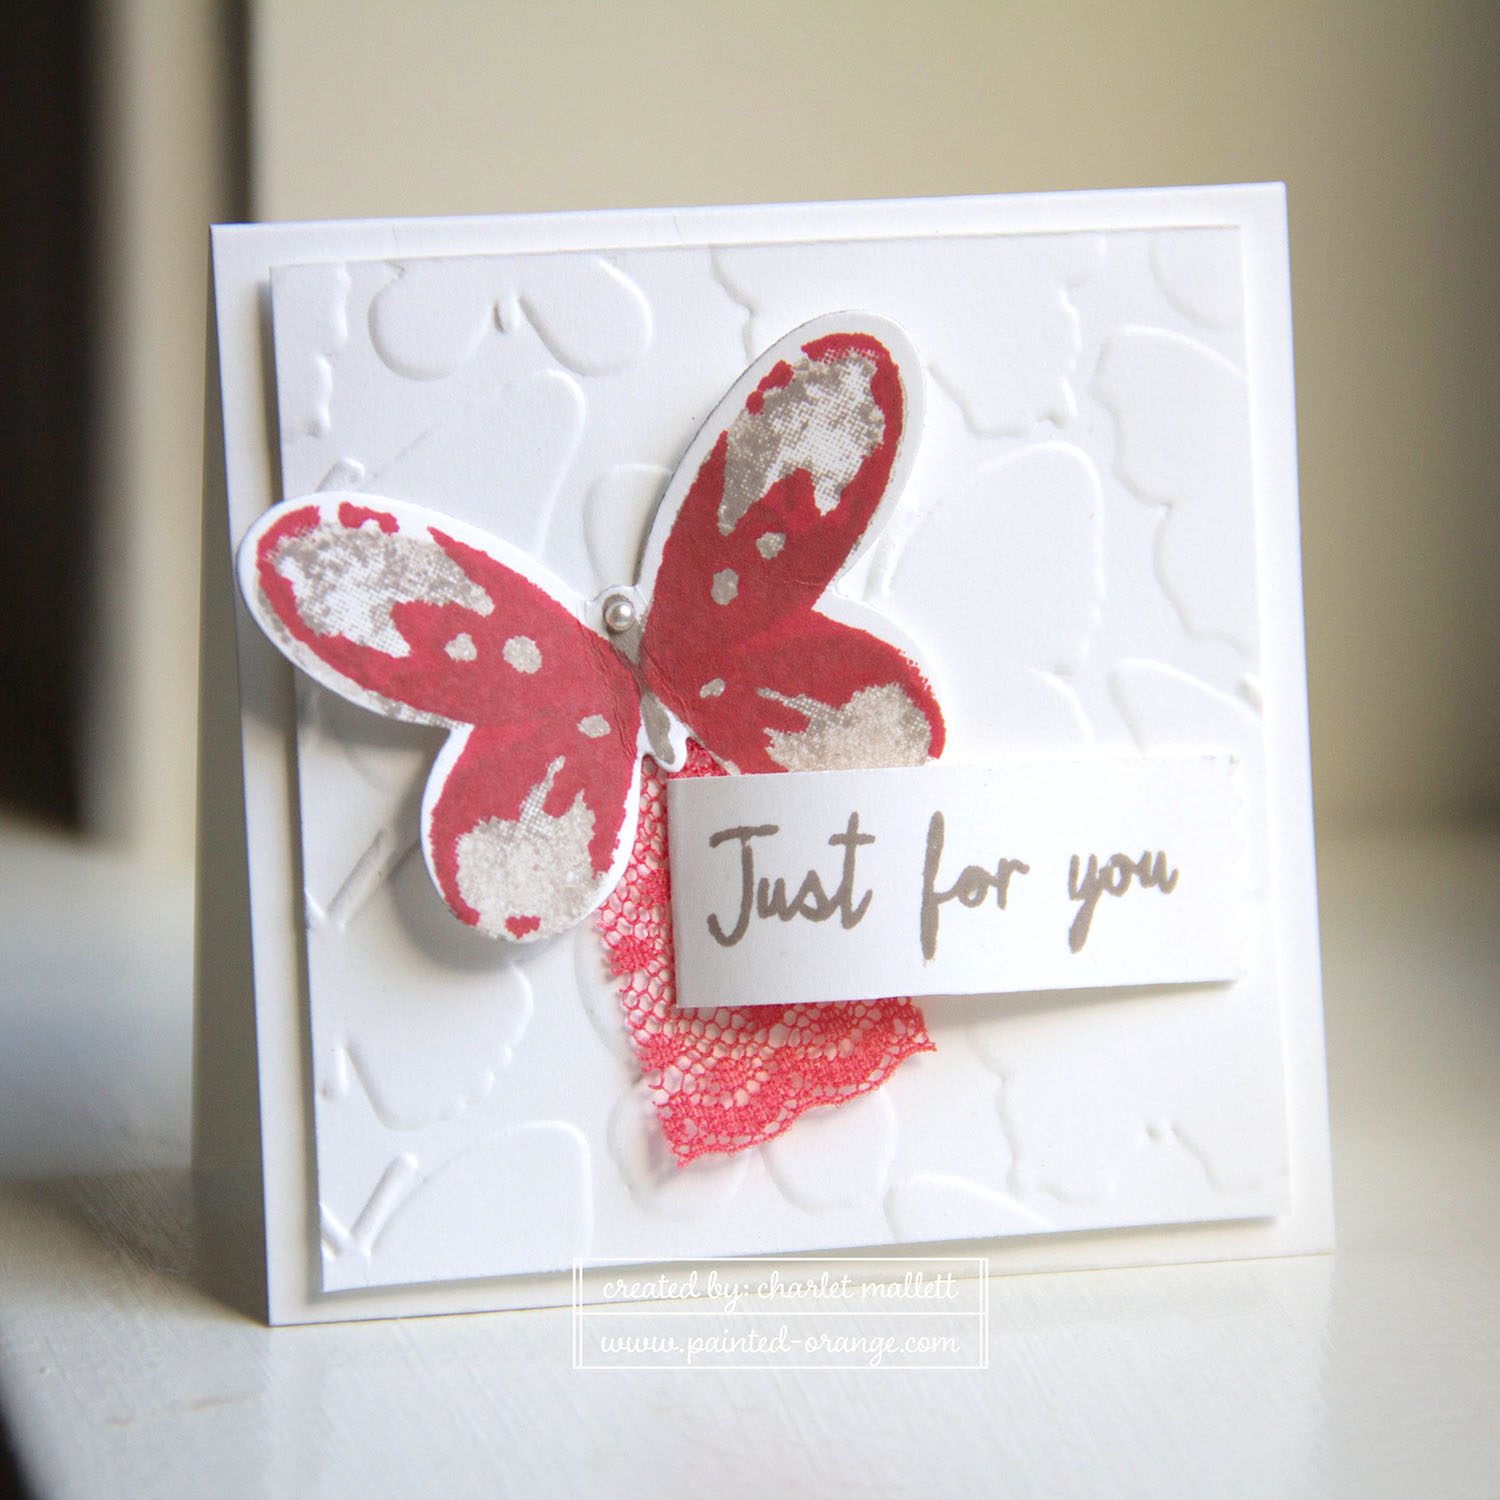 Watercolor Wings - Just for you 3x3 notecard